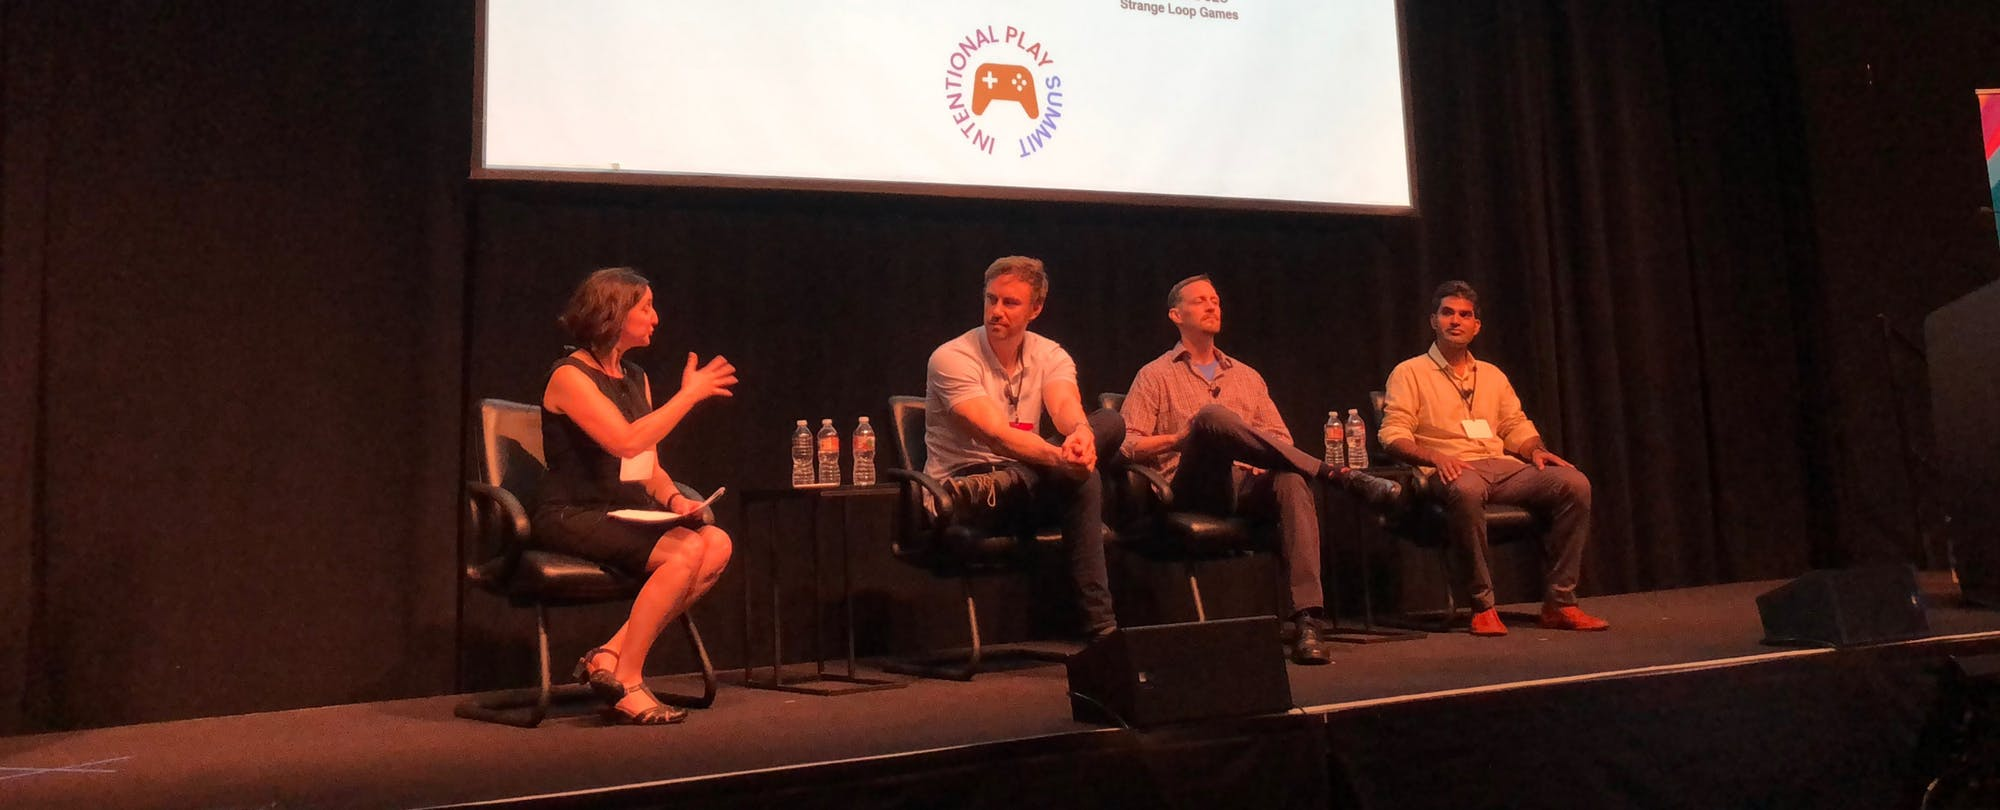 Building a Learning Company: Three Entrepreneurs Dish Out Advice